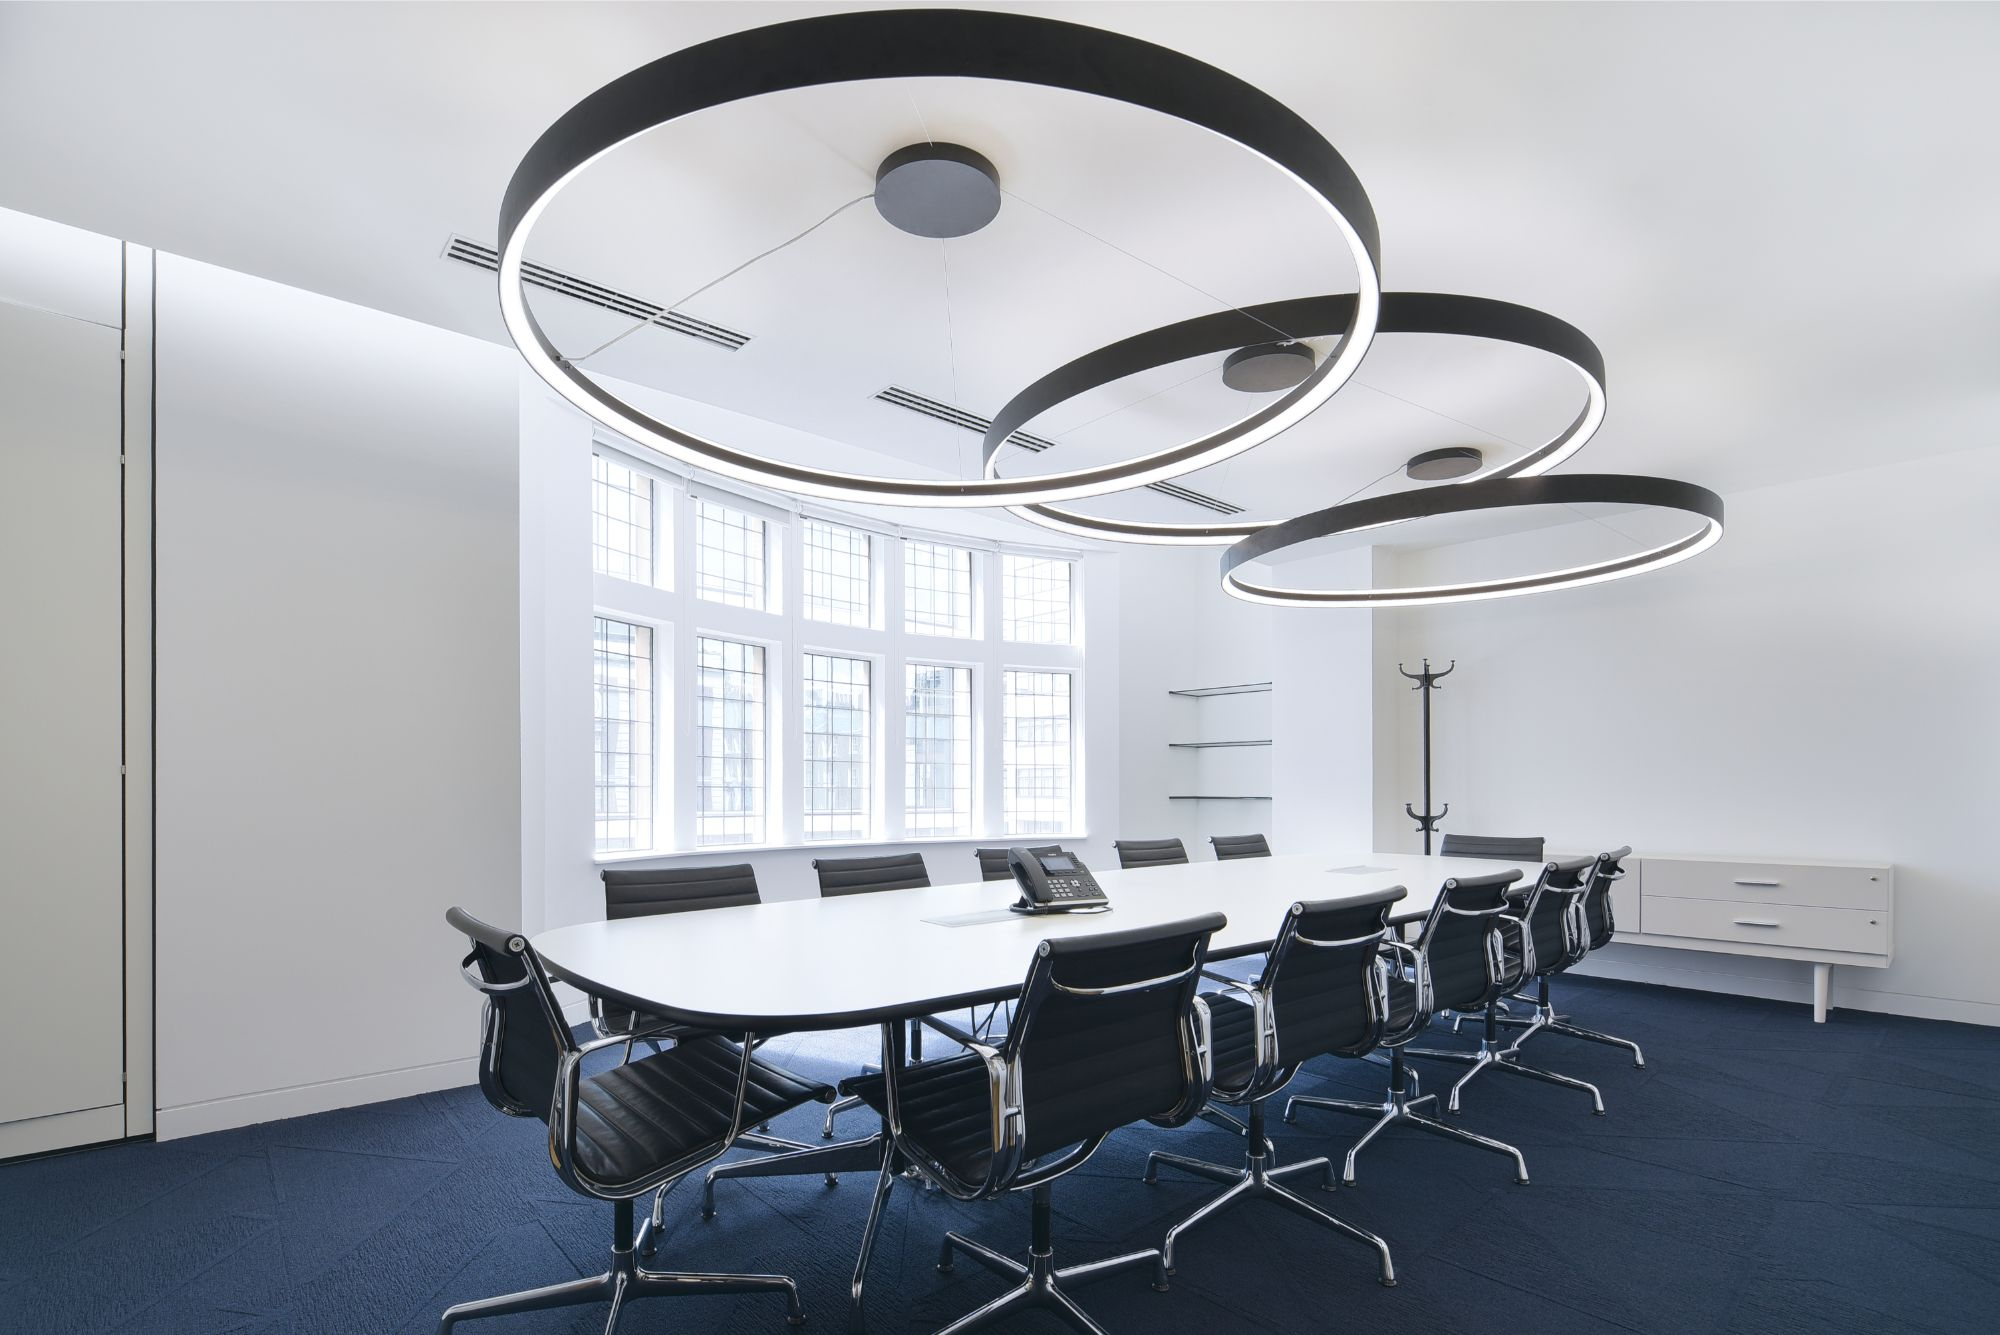 Architectural suspended lighting. - Ceiling pendants are a popular choice for lighting architectural spaces, circulation areas or breakout spaces. Find out more about architectural suspended lighting here.